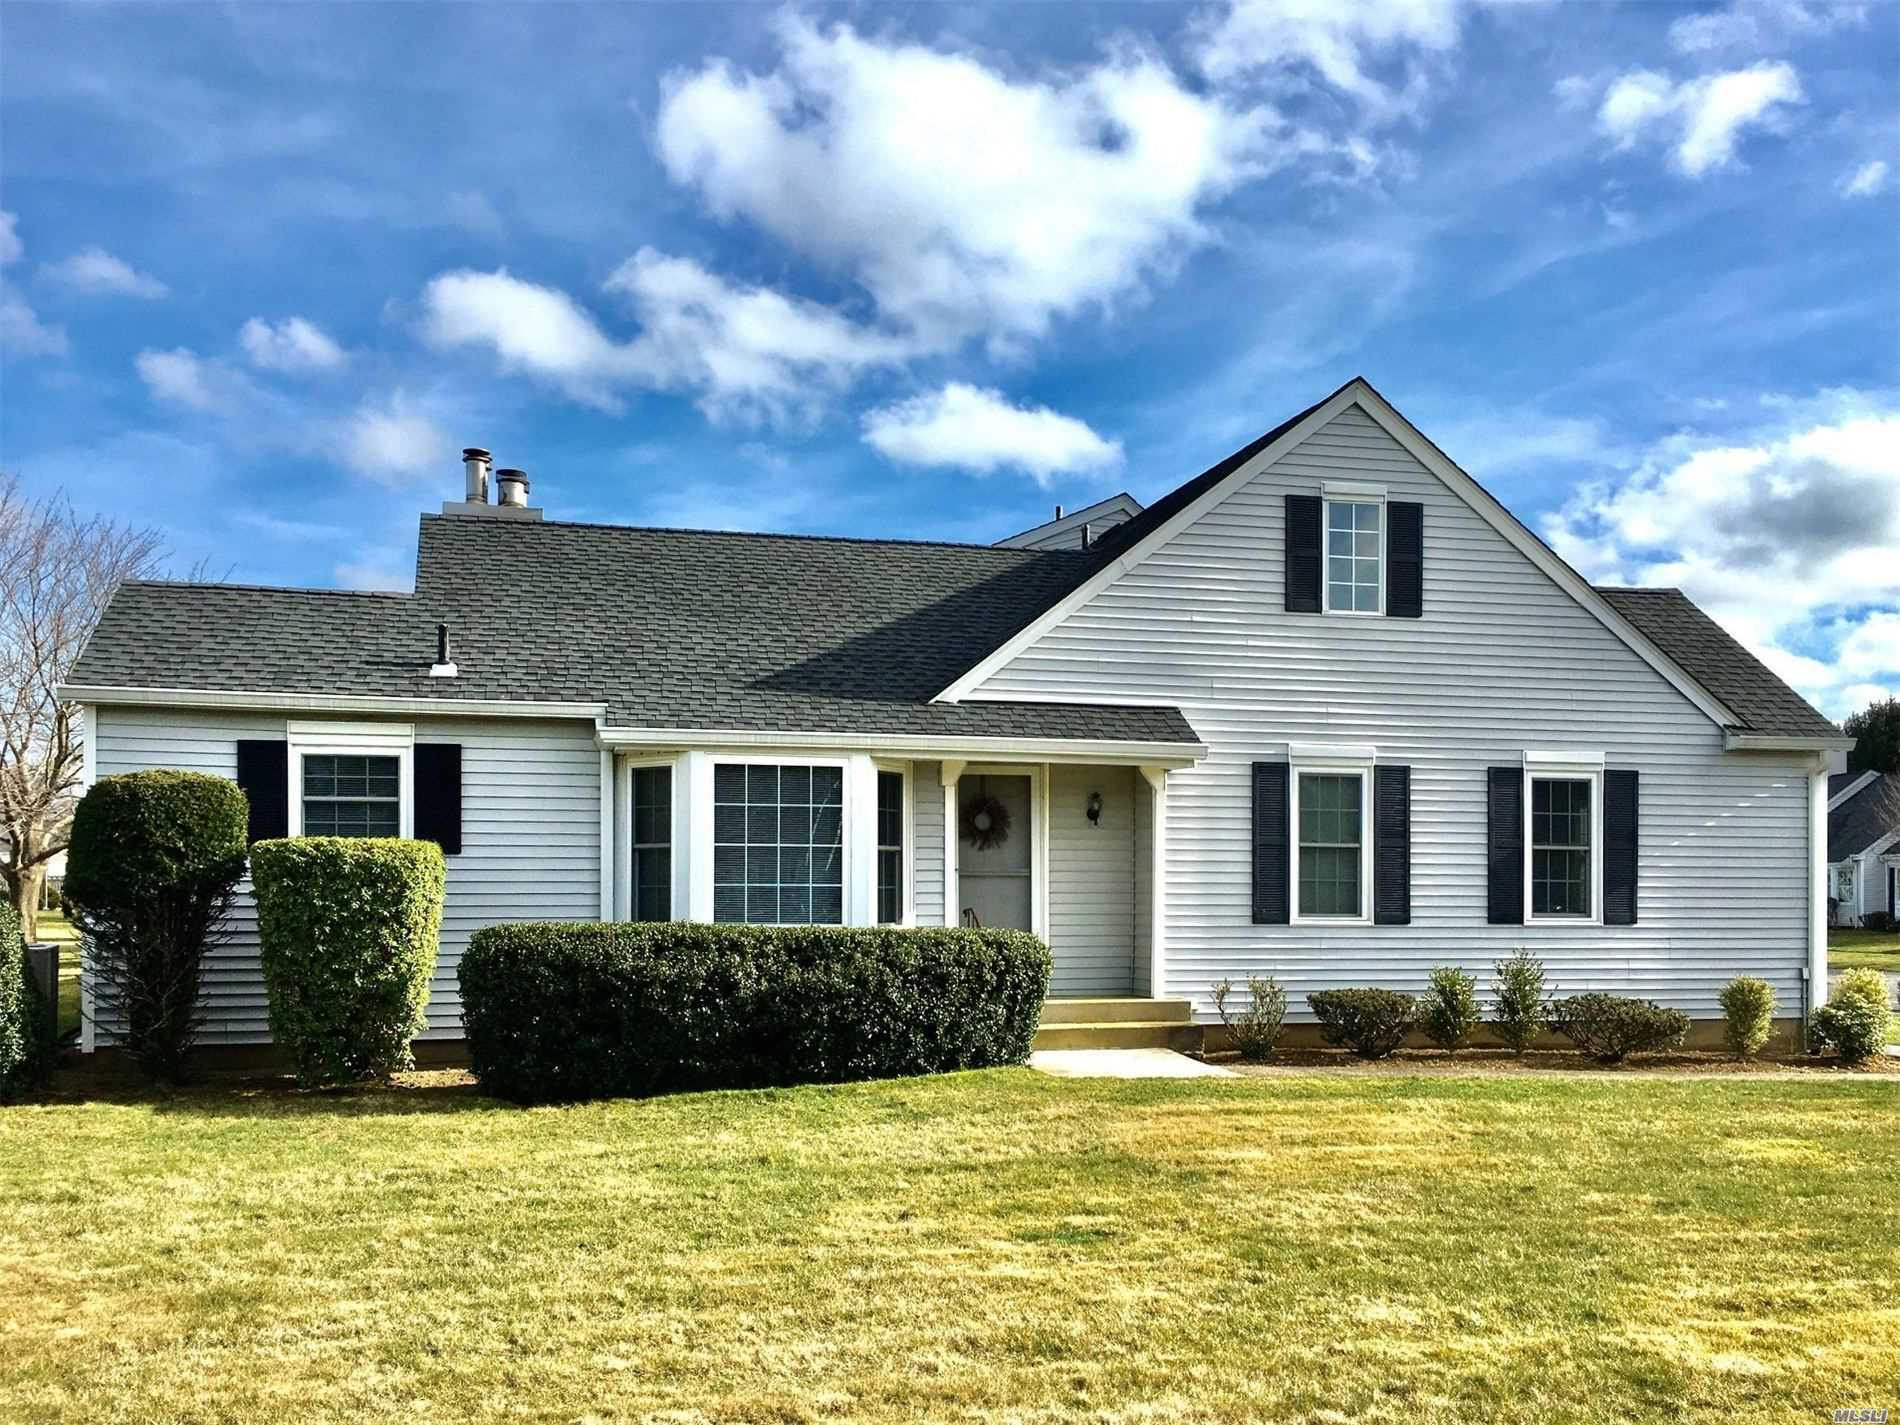 Property for sale at 2555 Youngs Avenue, Southold NY 11971, Southold,  New York 11971